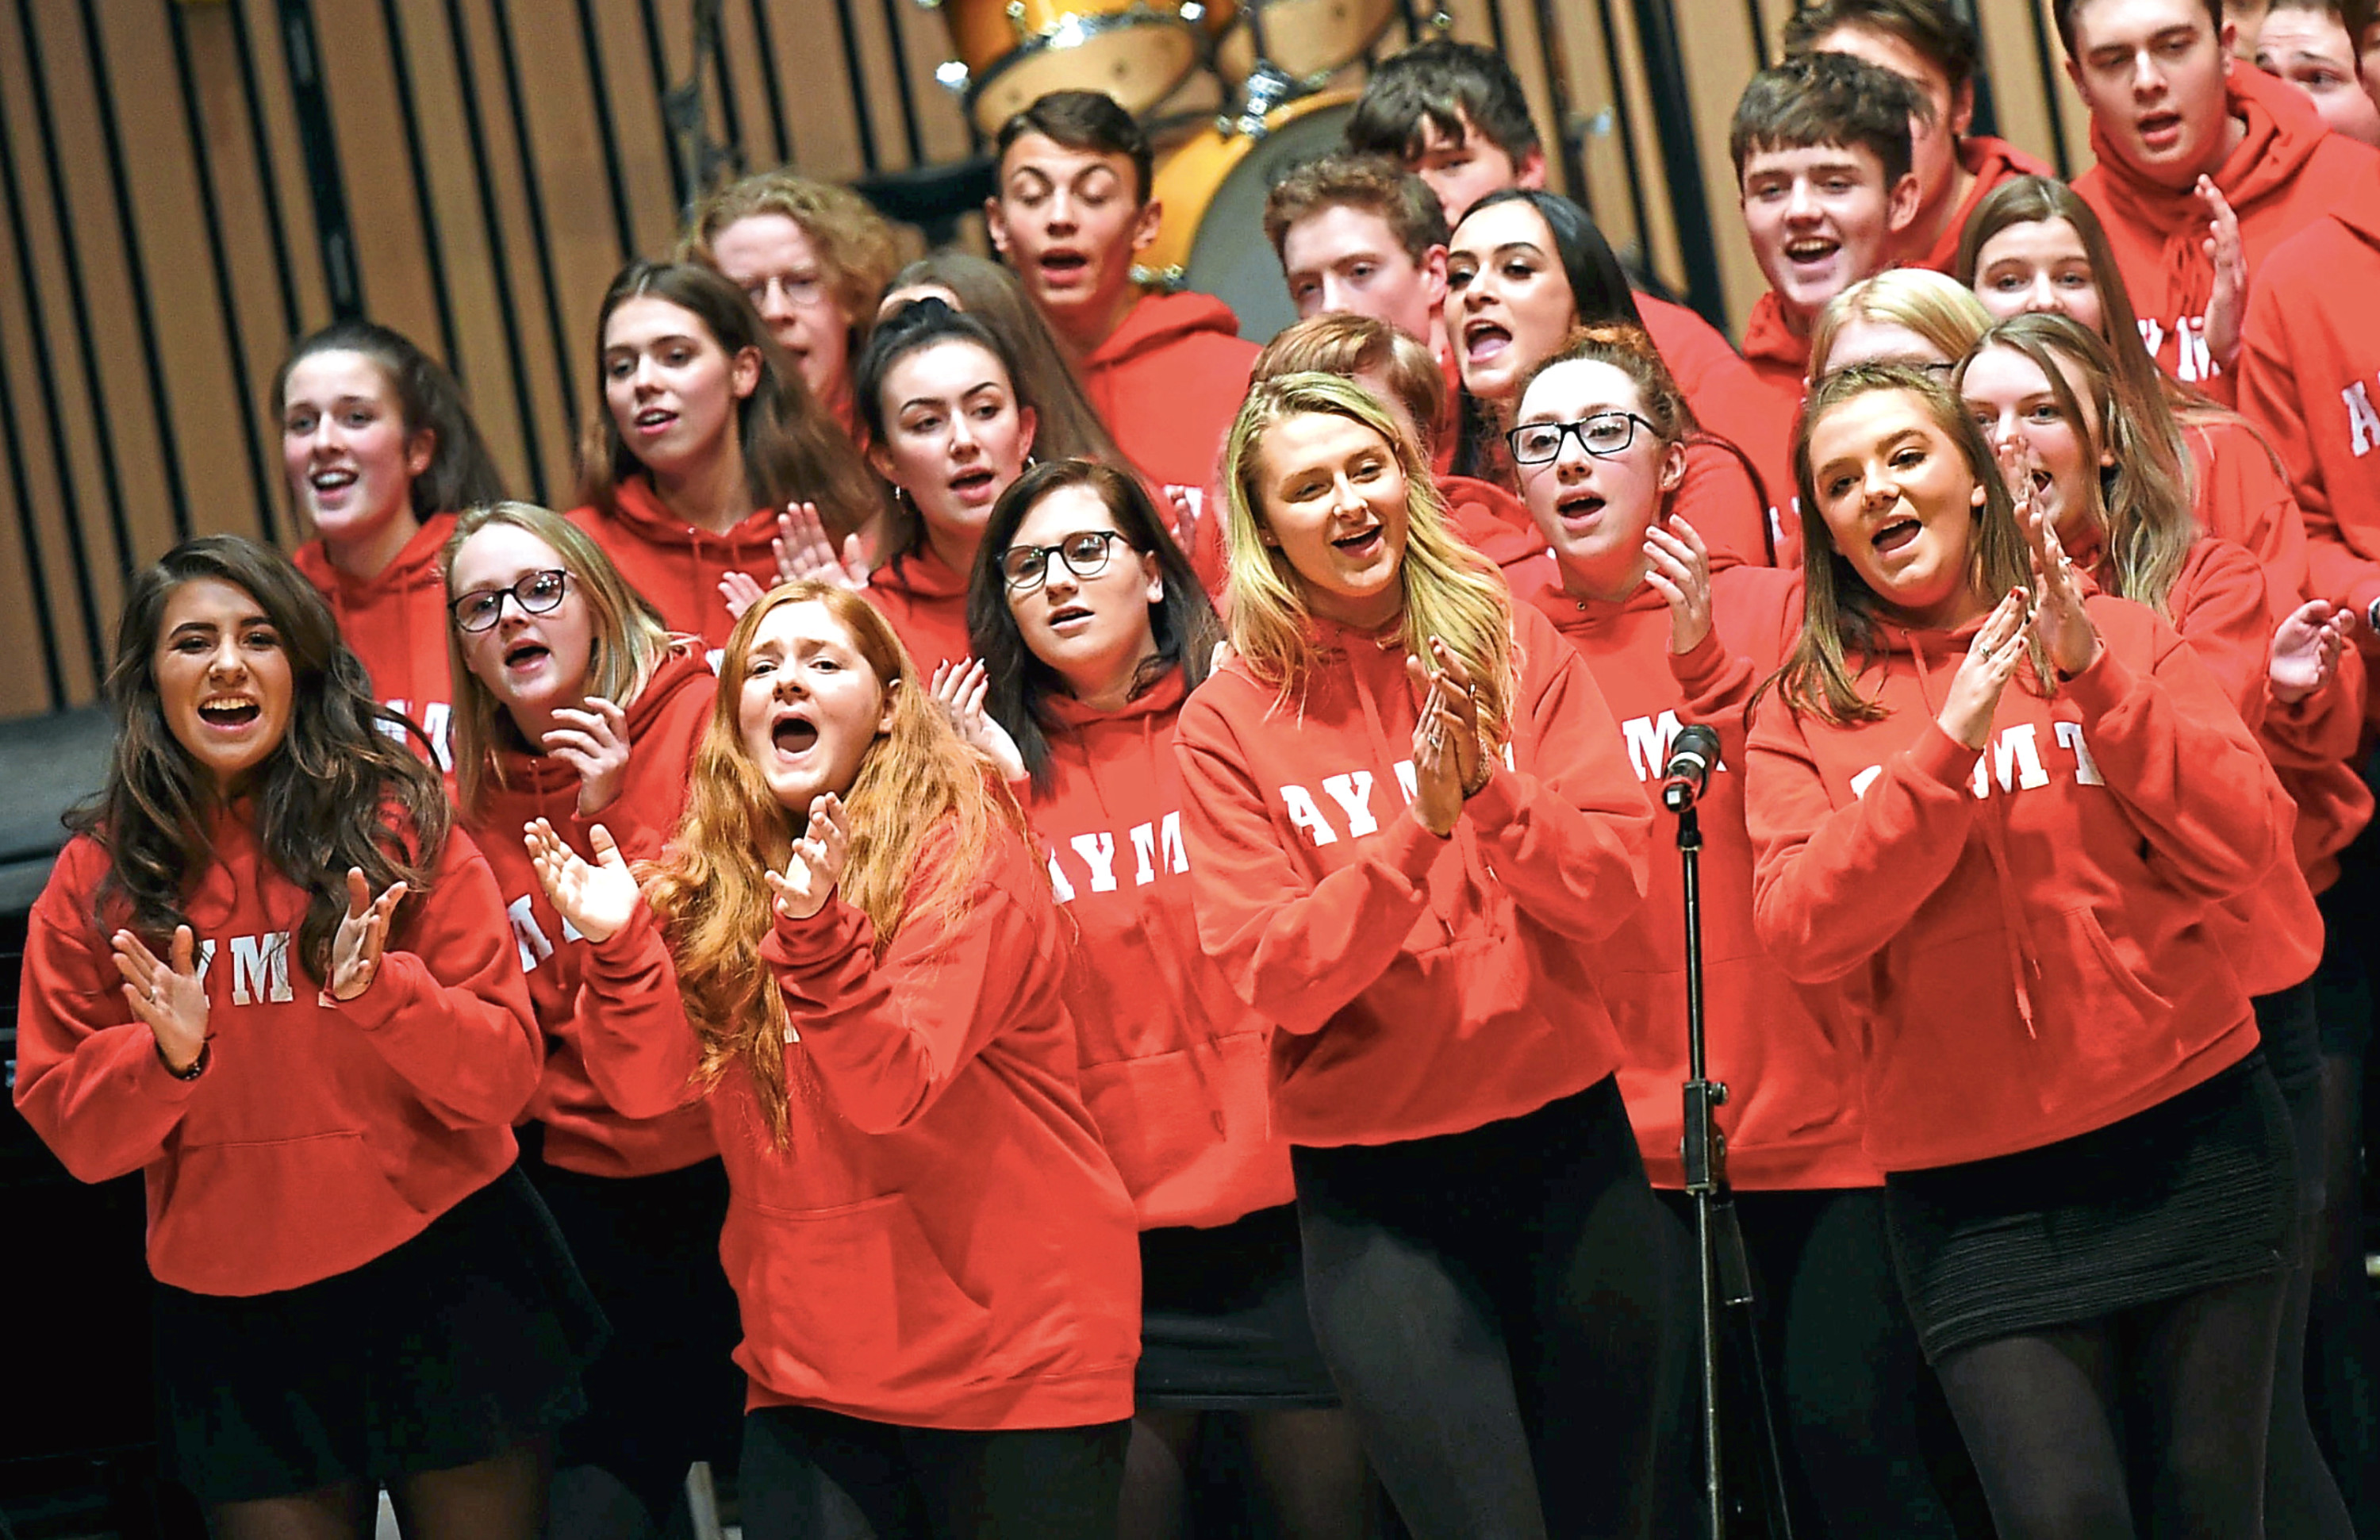 Aberdeen Youth Music Theatre at last year's Evening Express Carol Concert at the Music Hall